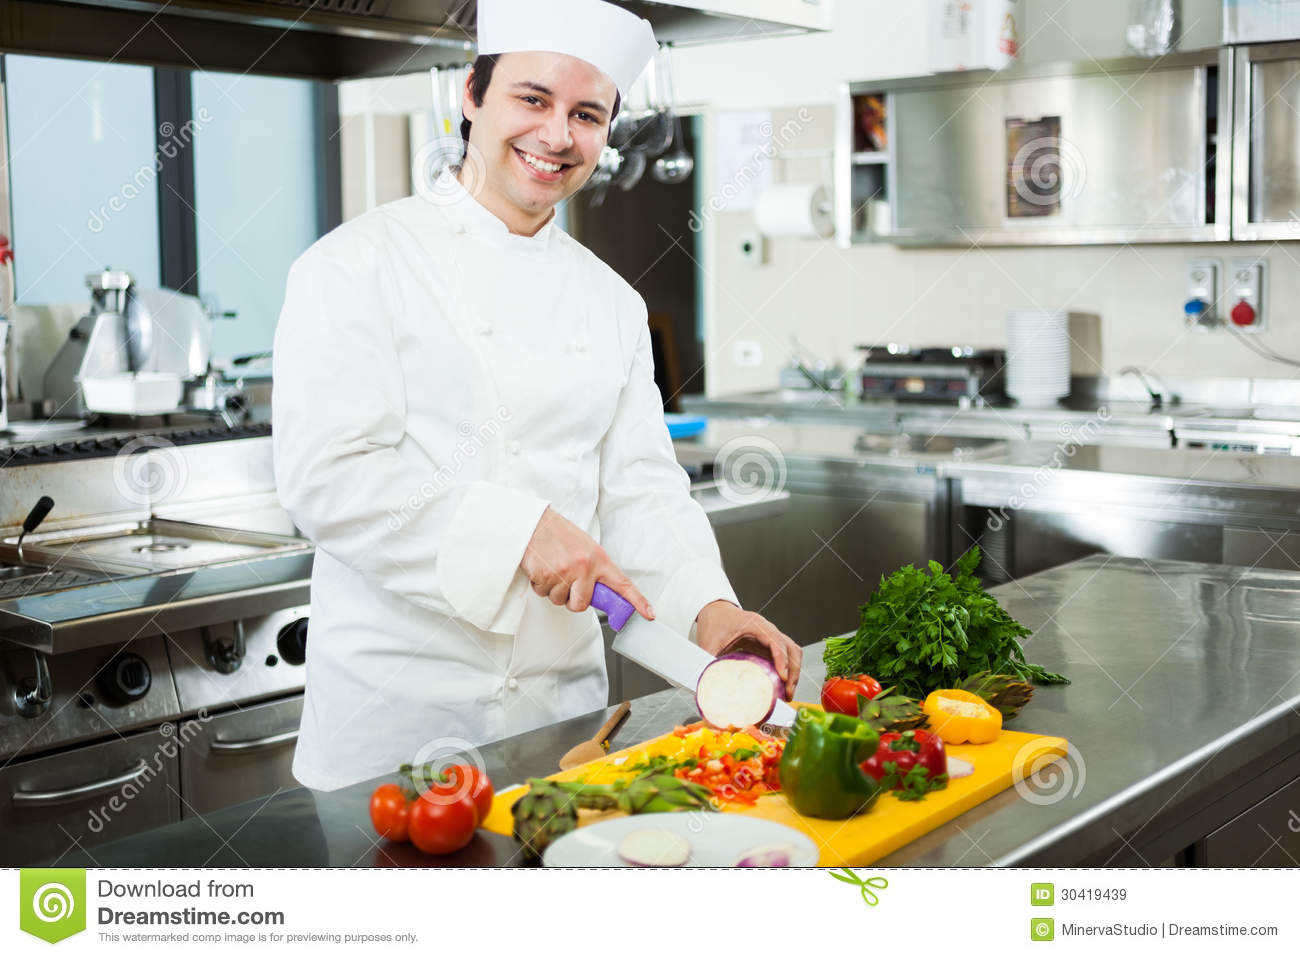 Chef Cooking In His Kitchen Stock Image - Image of profession ...